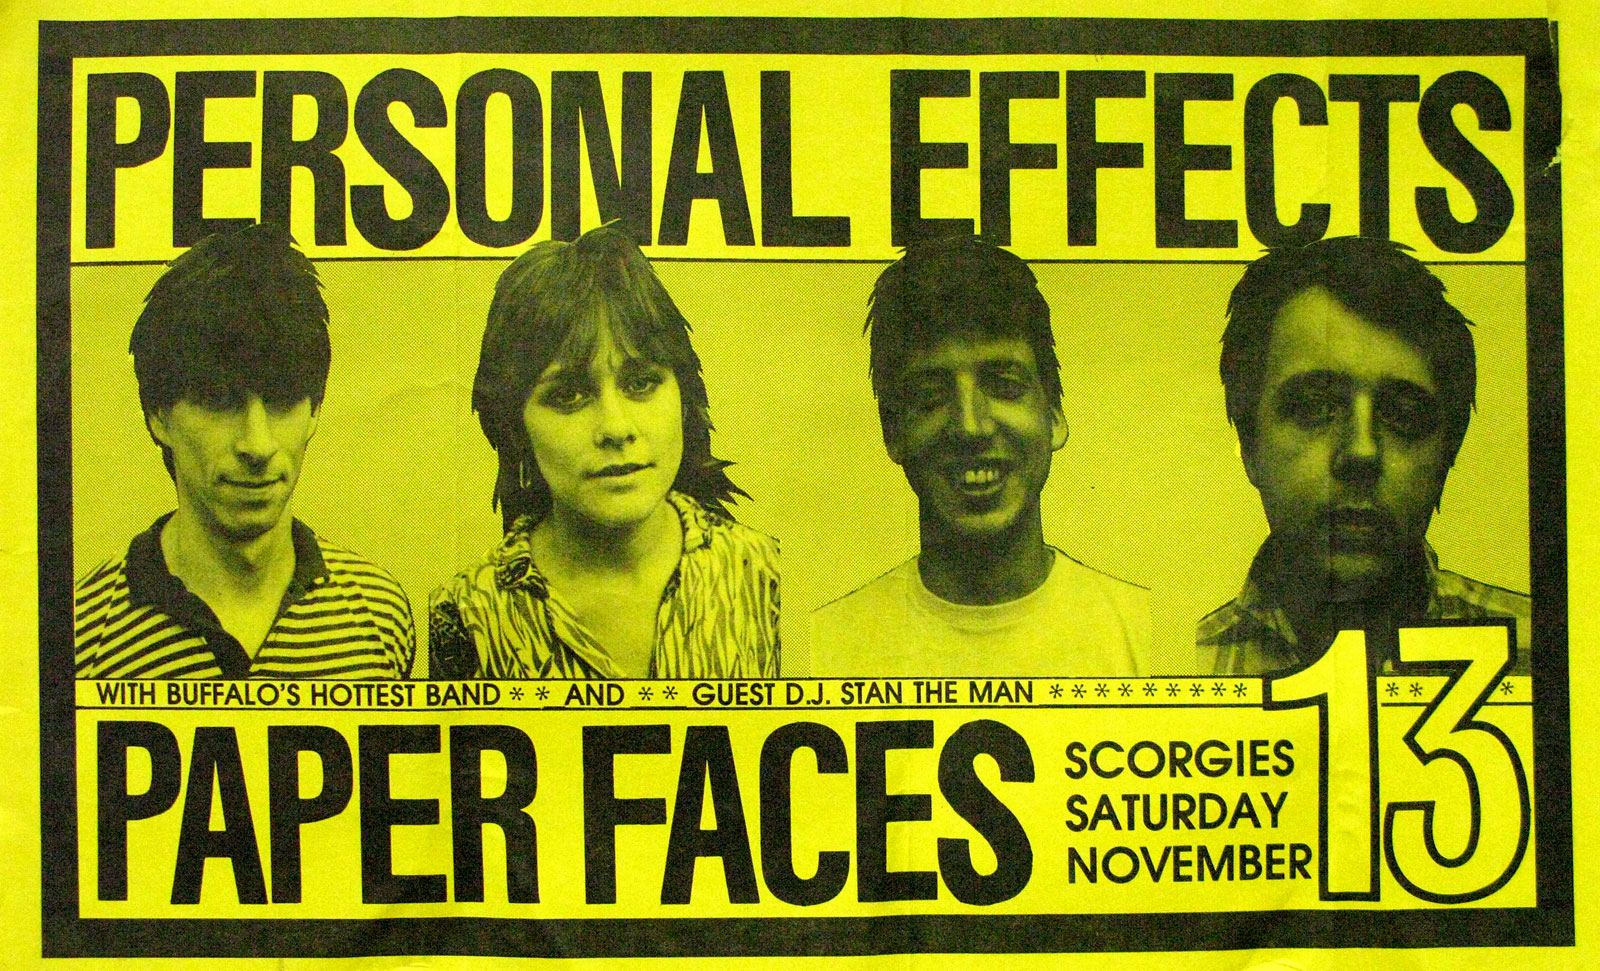 Poster for Personal Effects with Paper Faces at Scorgie's in Rochester, New York on Saturday 11.13.1982